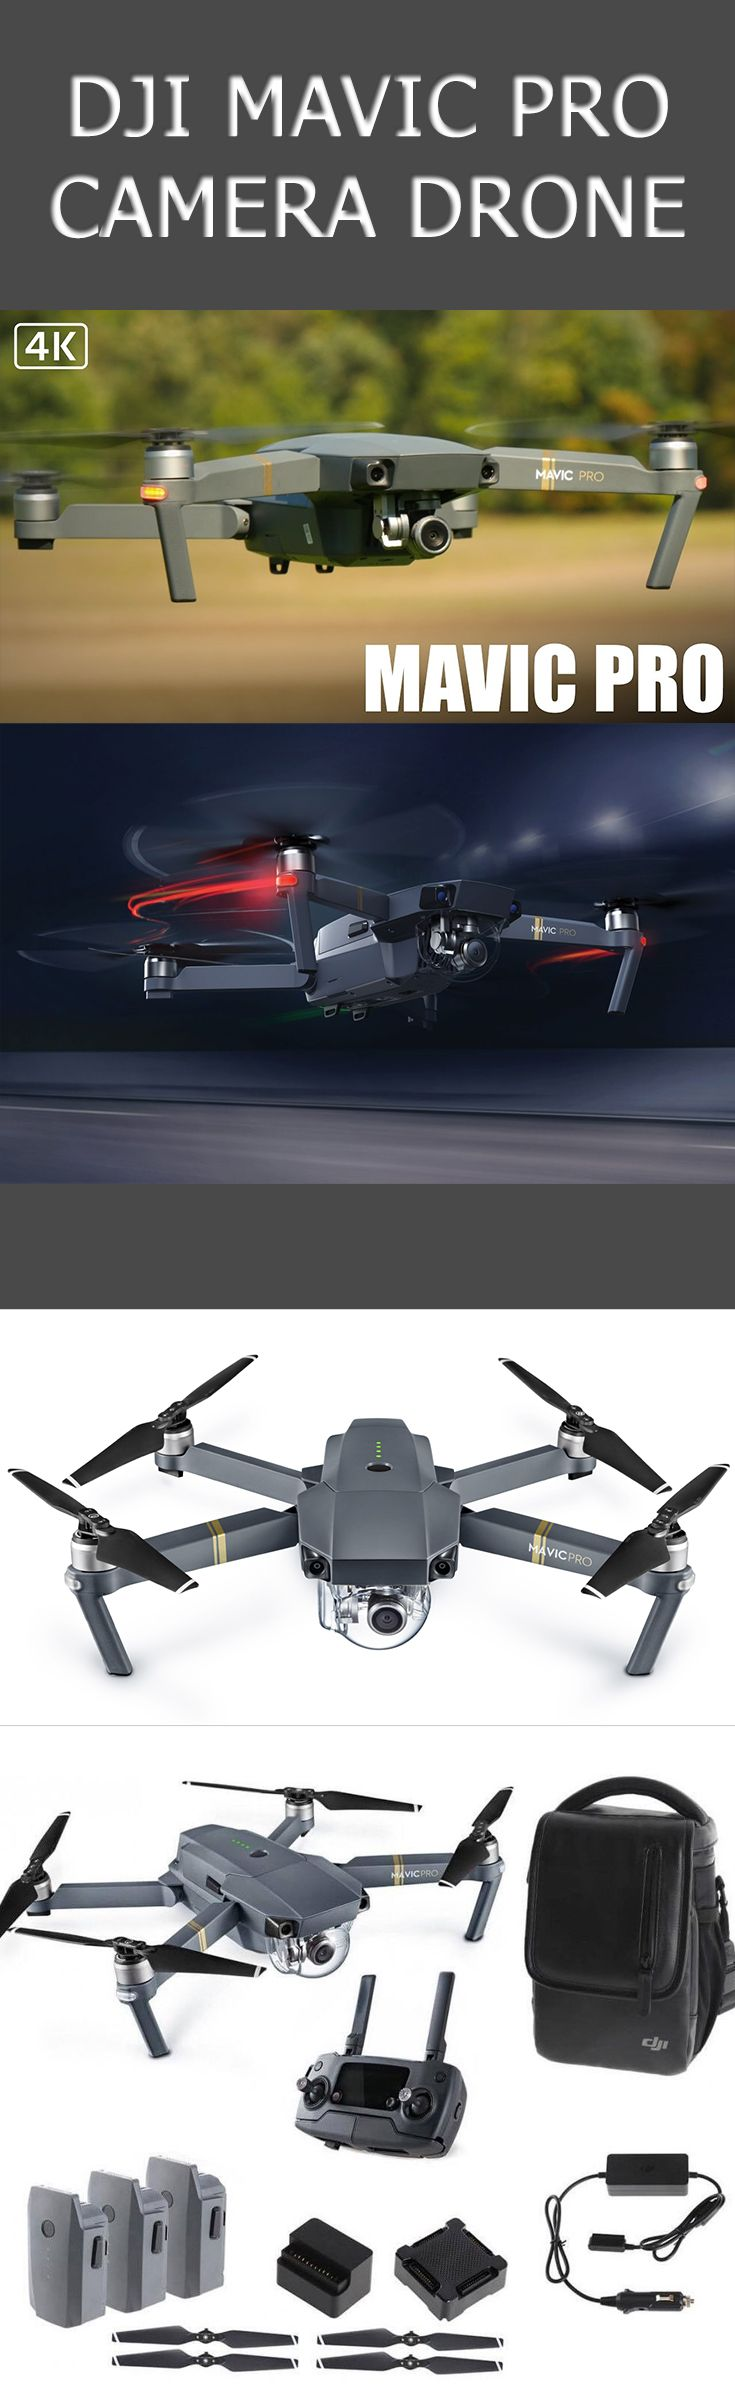 DJI Mavic Pro Camera Drone. Wherever You Go The DJI Mavic Pro is a small yet powerful drone that turns the sky into your creative canvass easily and without worry, helping you make every moment an aerial moment. Its compact size hides a high degree of complexity that makes it one of DJI's most sophisticated flying cameras ever. | DJI Mavic Pro | dji drone | drone dji |